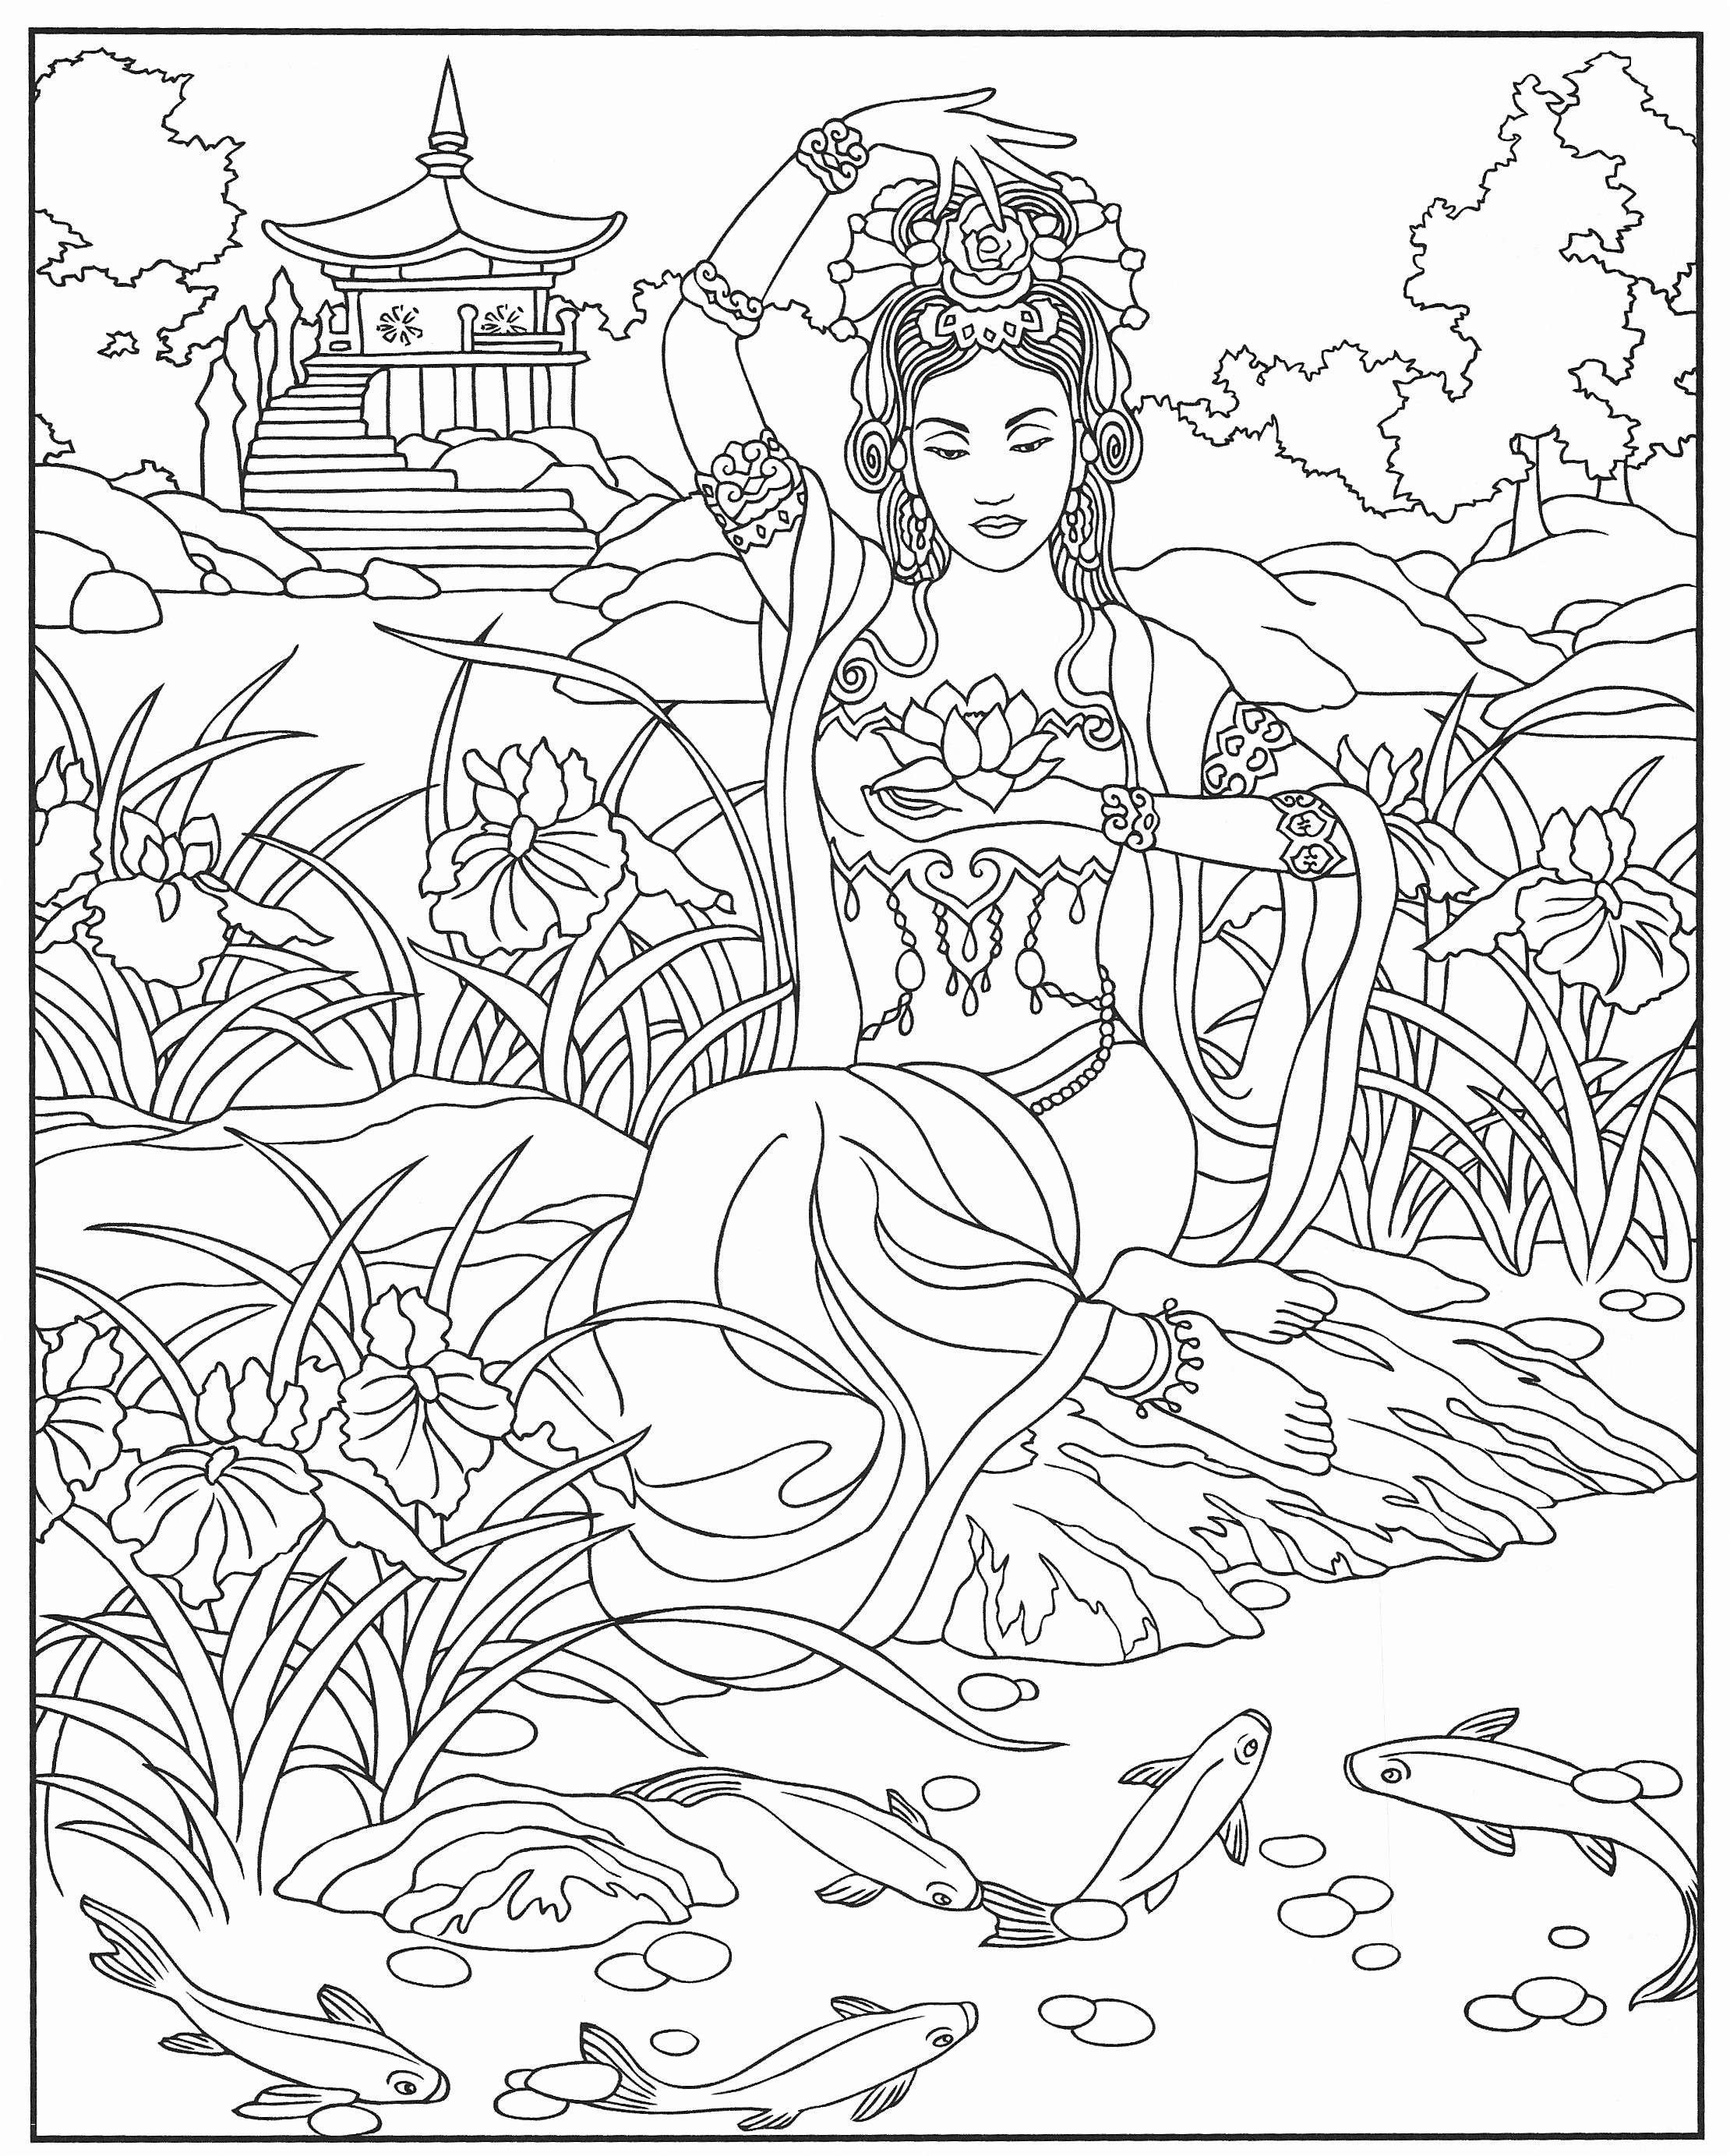 American Girl Coloring Pages  Gallery 16n - Free For Children